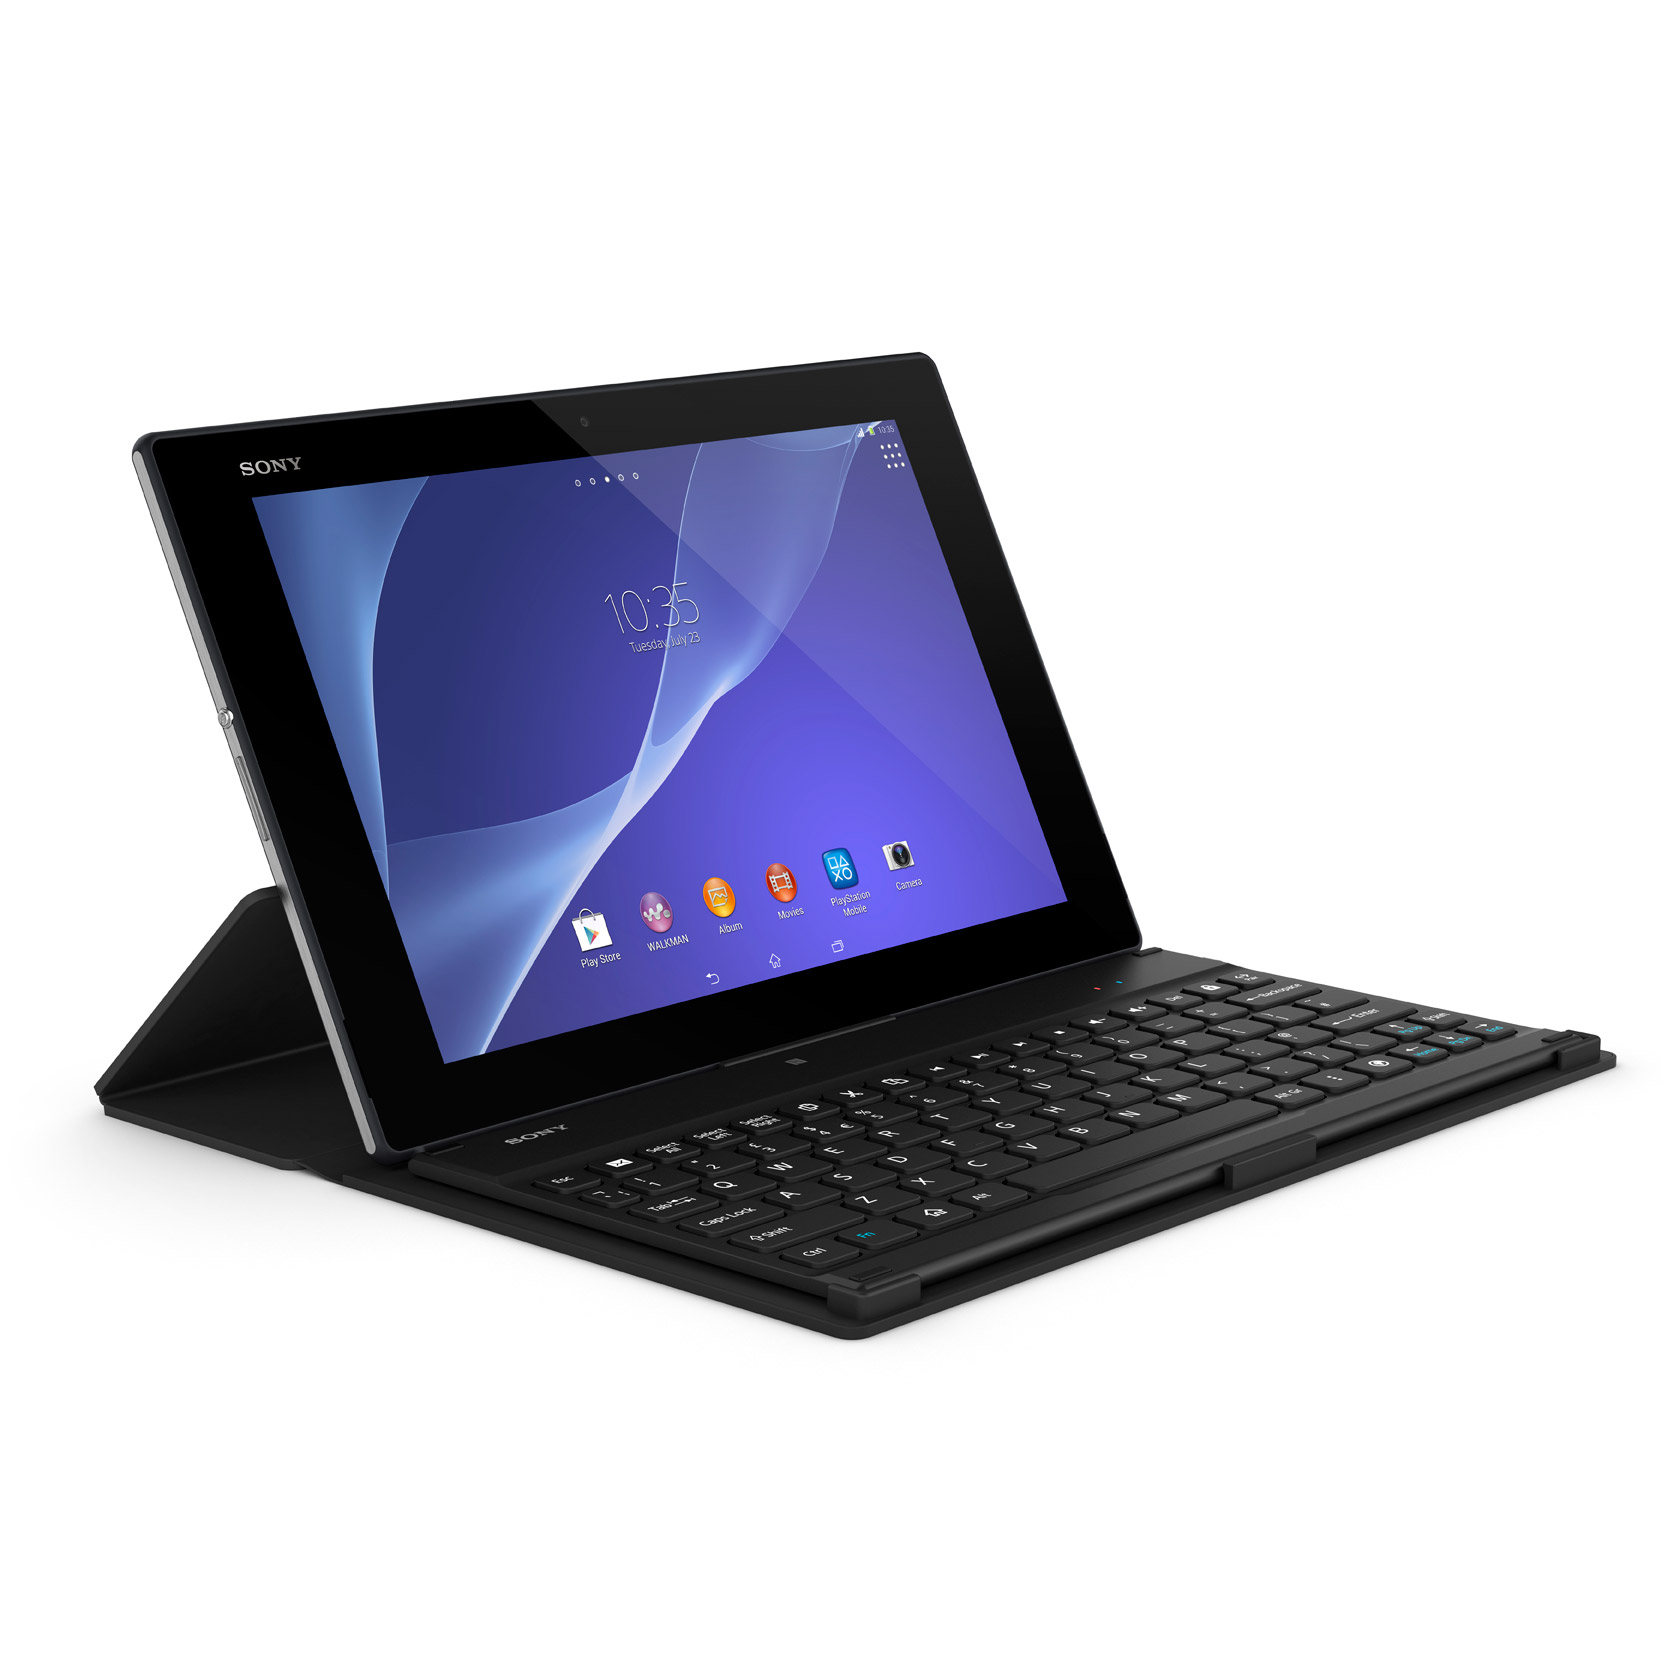 Sony Xperia Z2 Tablet - Keyboard Dock - AndroidTapp